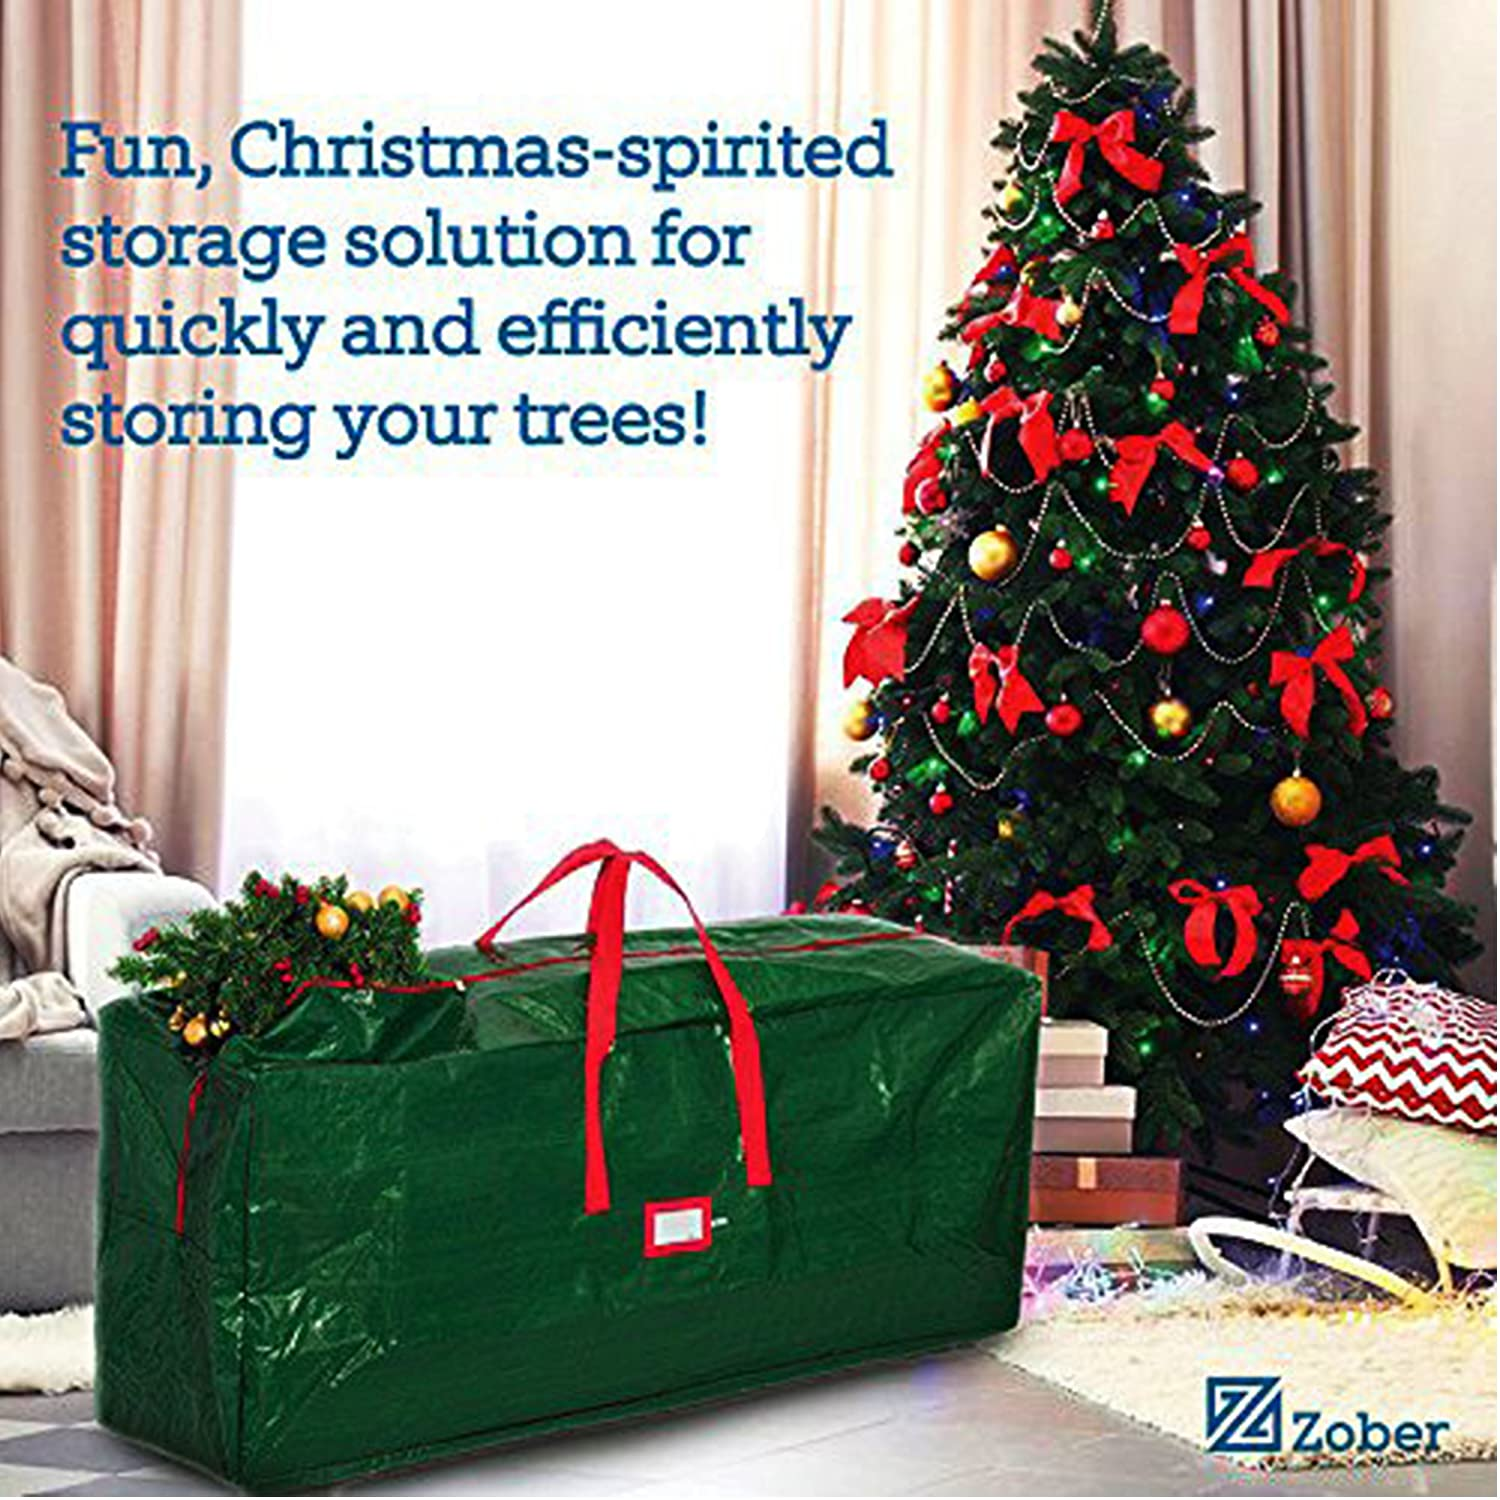 amazoncom zober christmas tree storage bag artificial up to 7 christmas tree organizer for un assembled trees with sleek zipper also accommodates - Christmas Tree Bags Amazon